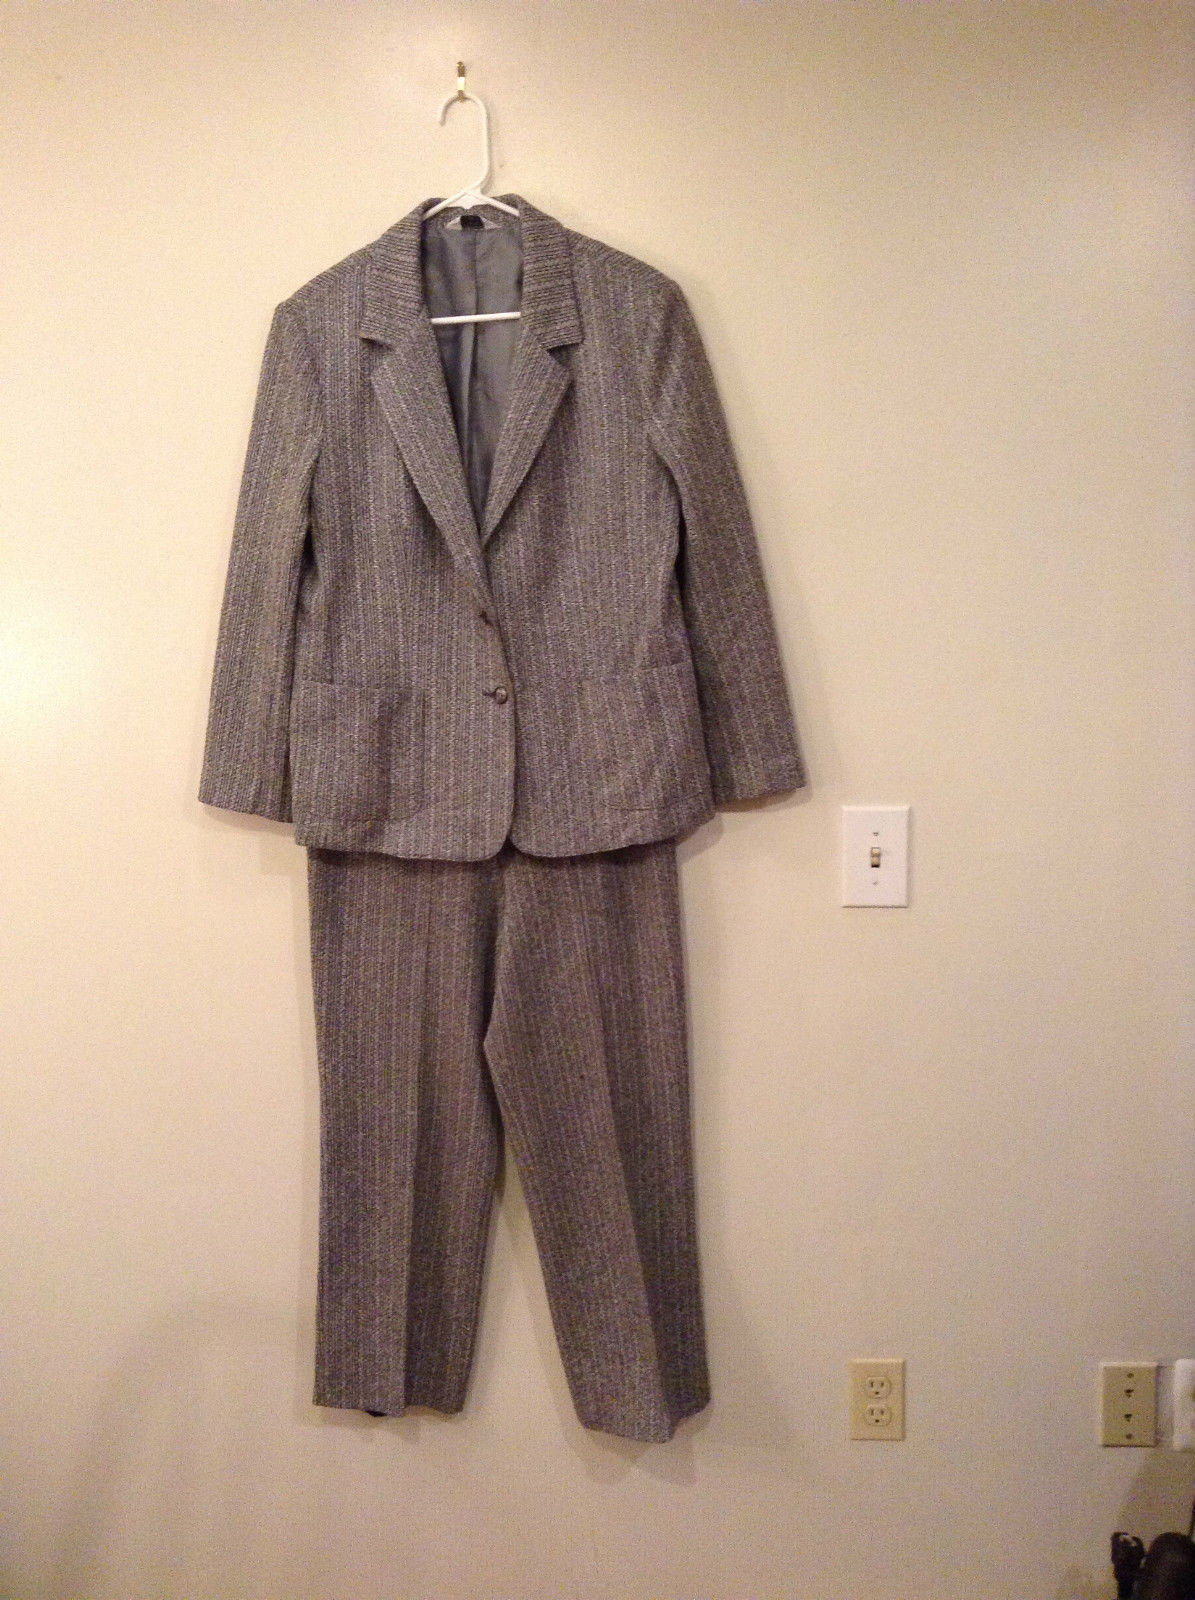 Wardrobe Maker Size 18 Jacket Pant Suit Unlined Black White Stripes Overall Gray